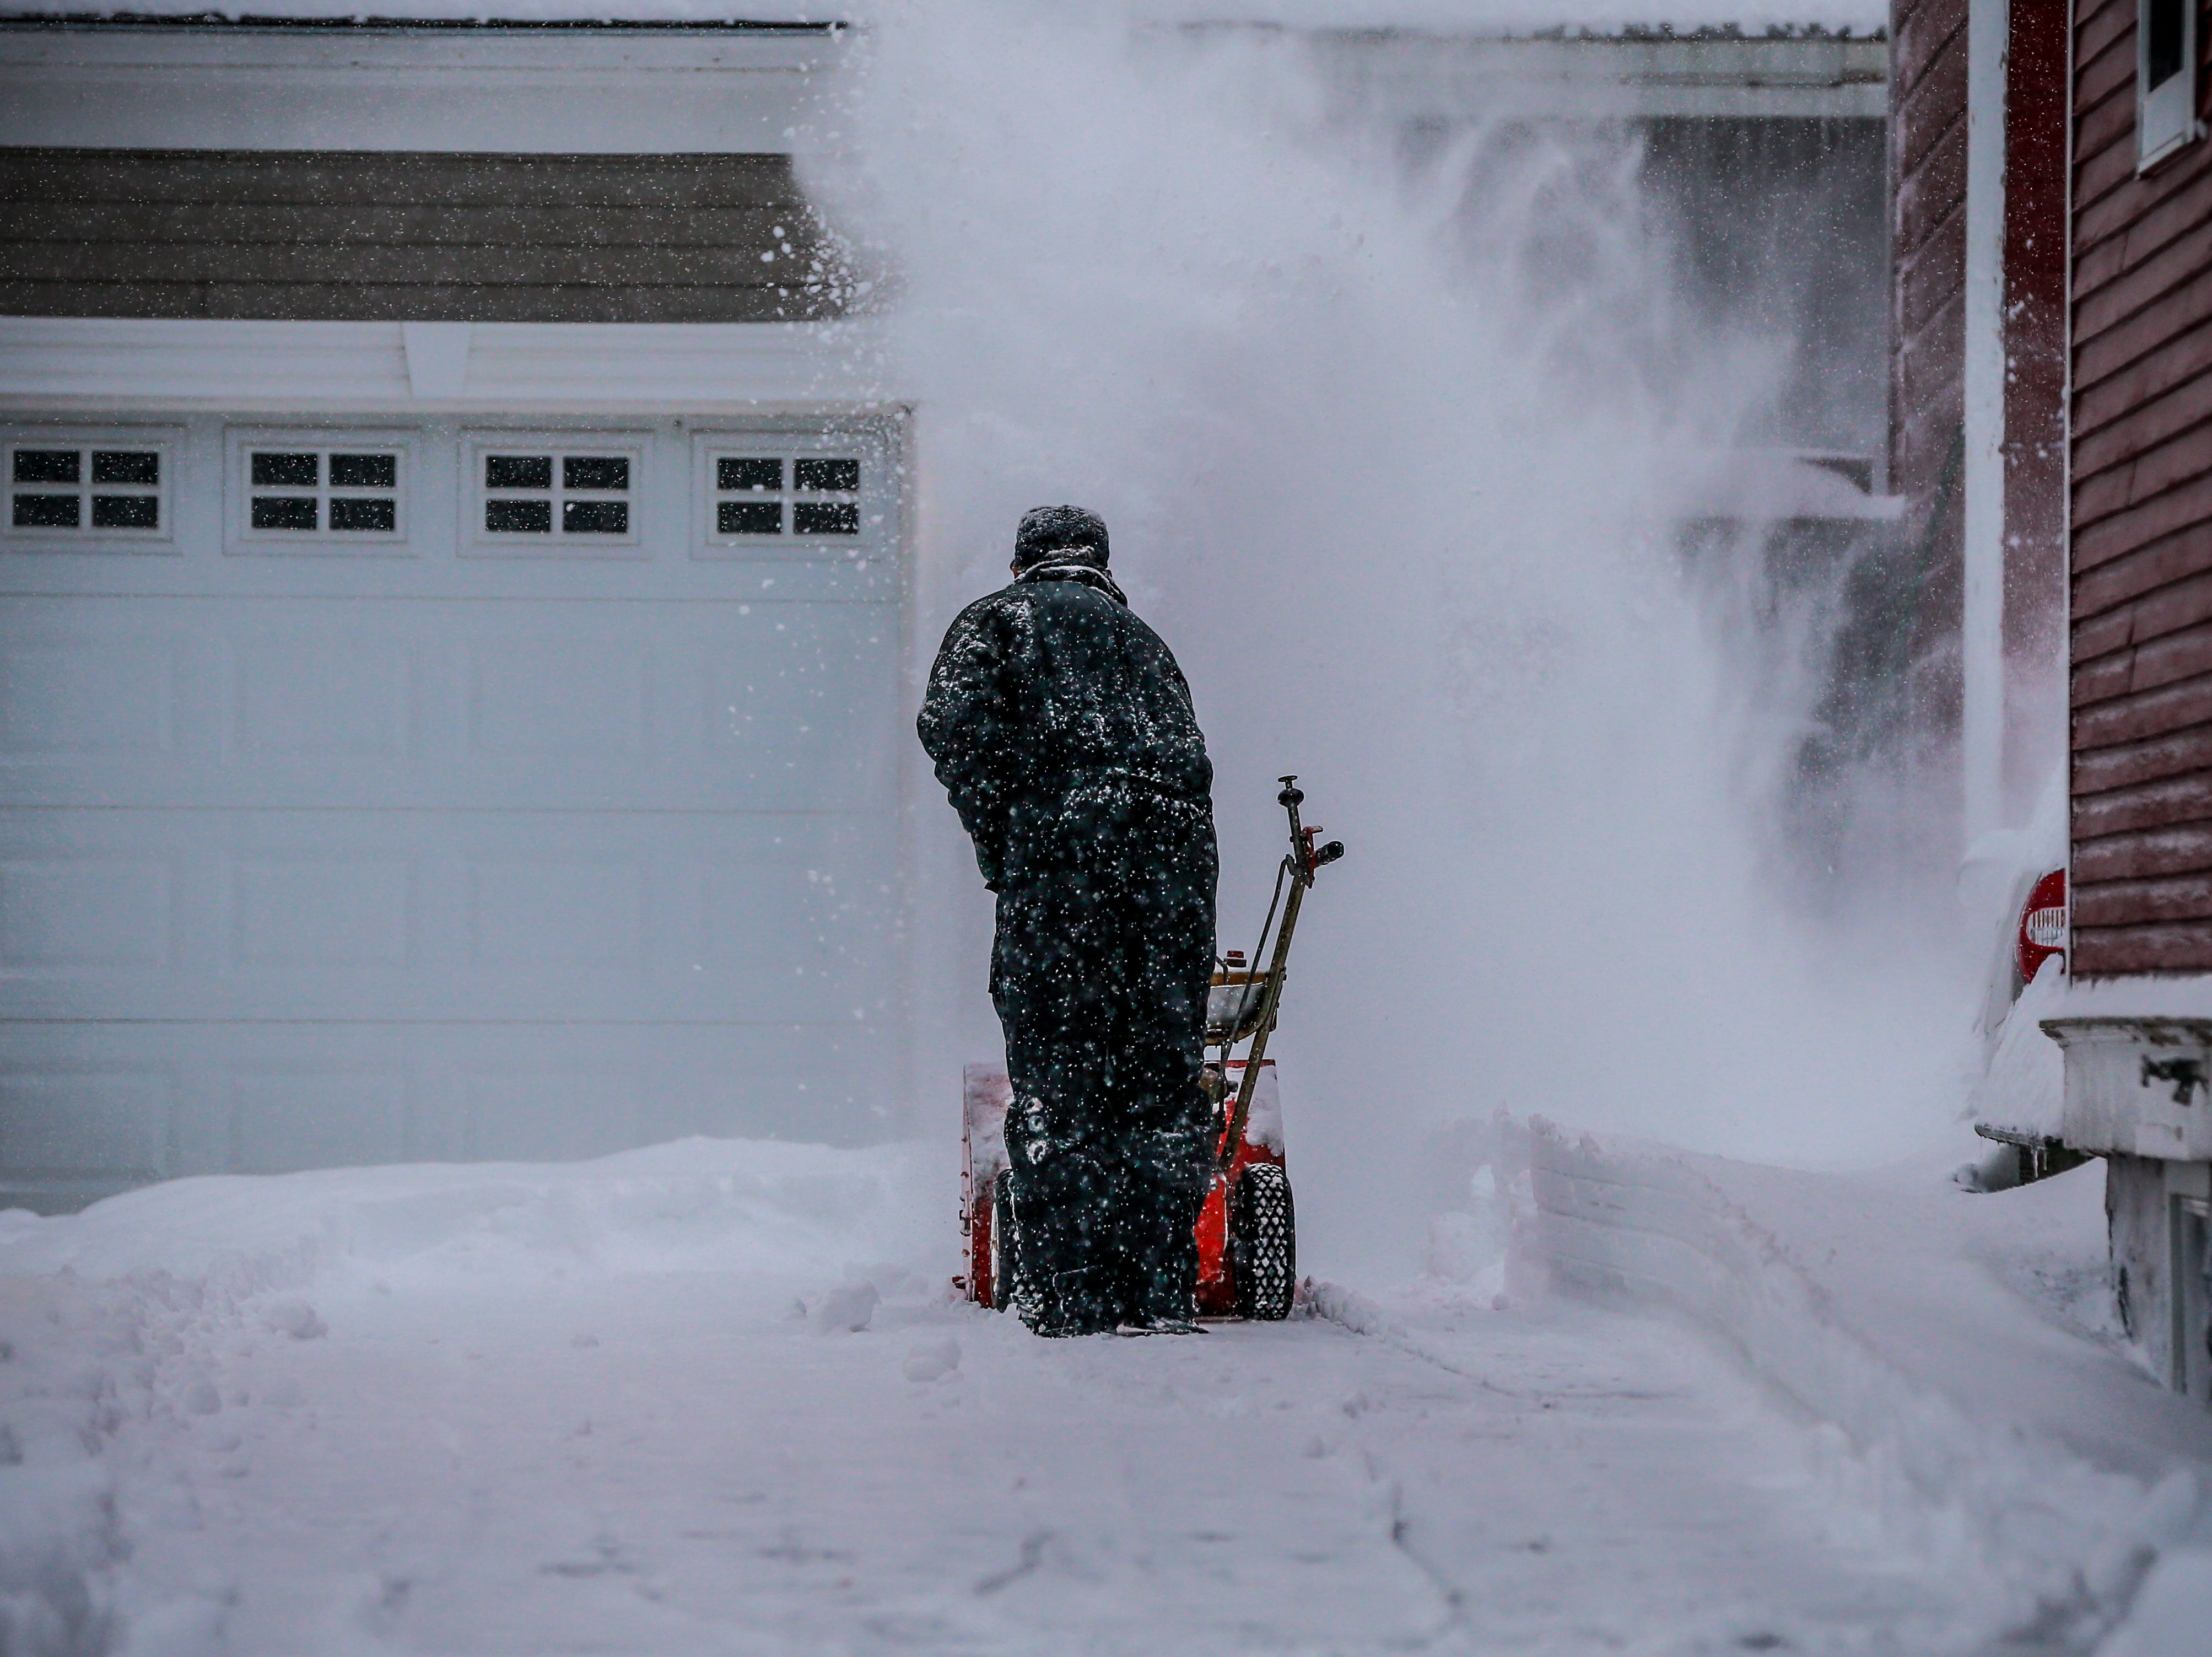 A James Lee plows his driveway Thursday, Feb. 07, 2019, in Wausau, Wis. T'xer Zhon Kha/USA TODAY NETWORK-Wisconsin